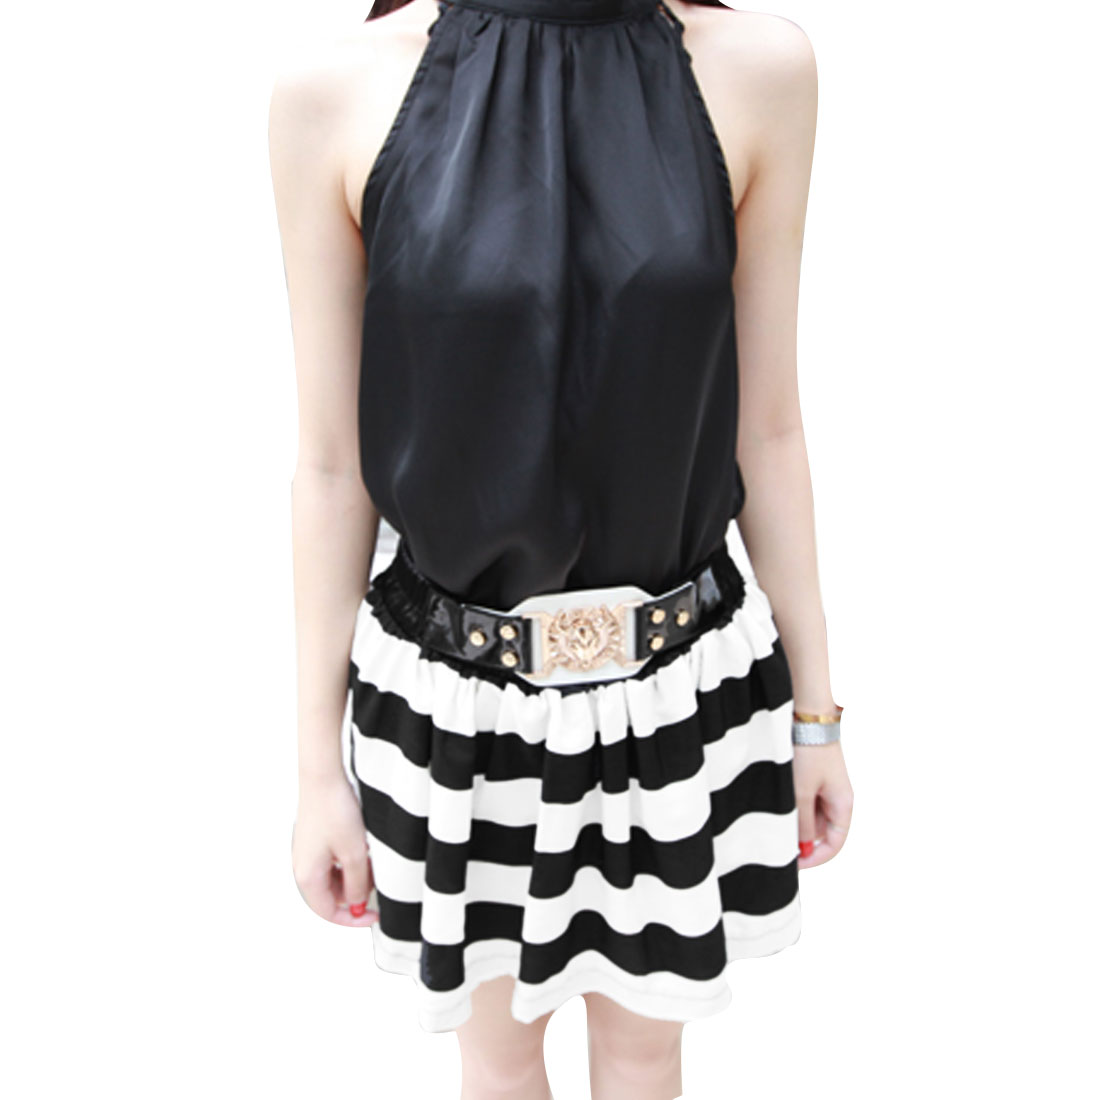 Women Elastic Waist Color Block Stripes Pattern Summer Skirt Black White S